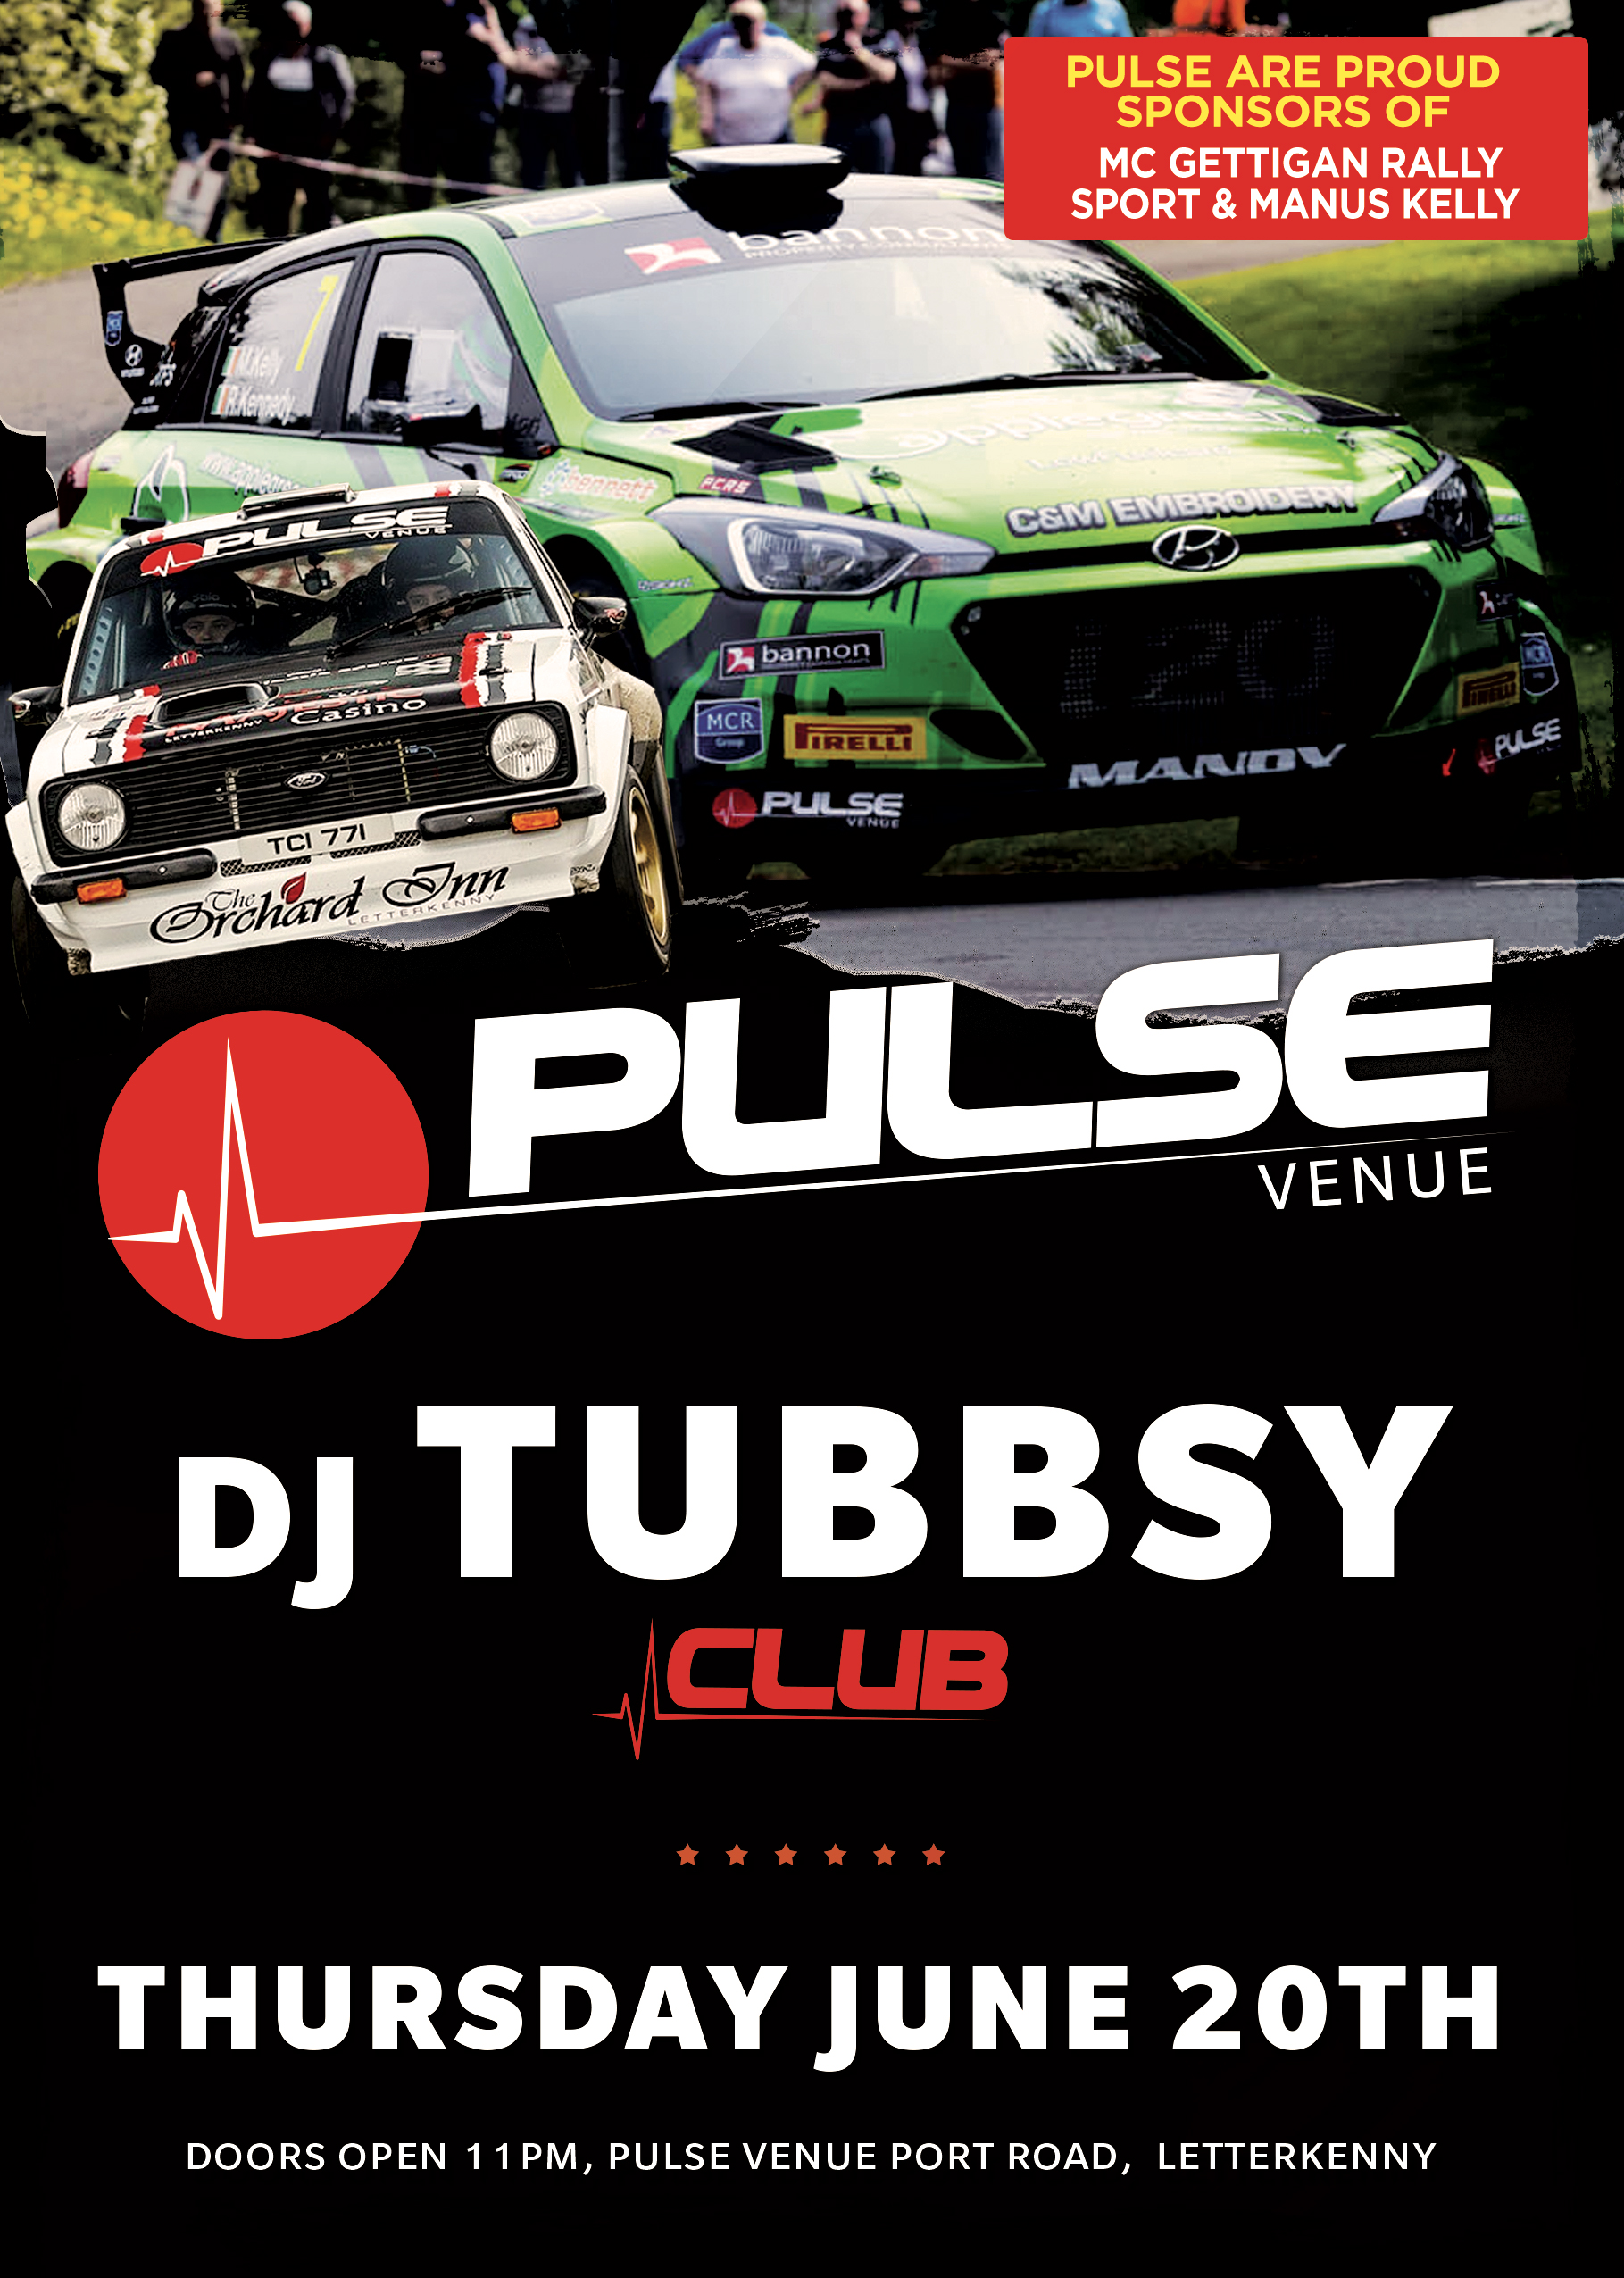 pulse-venue---pre-rally-disco---thursday-june-20-2019.jpg